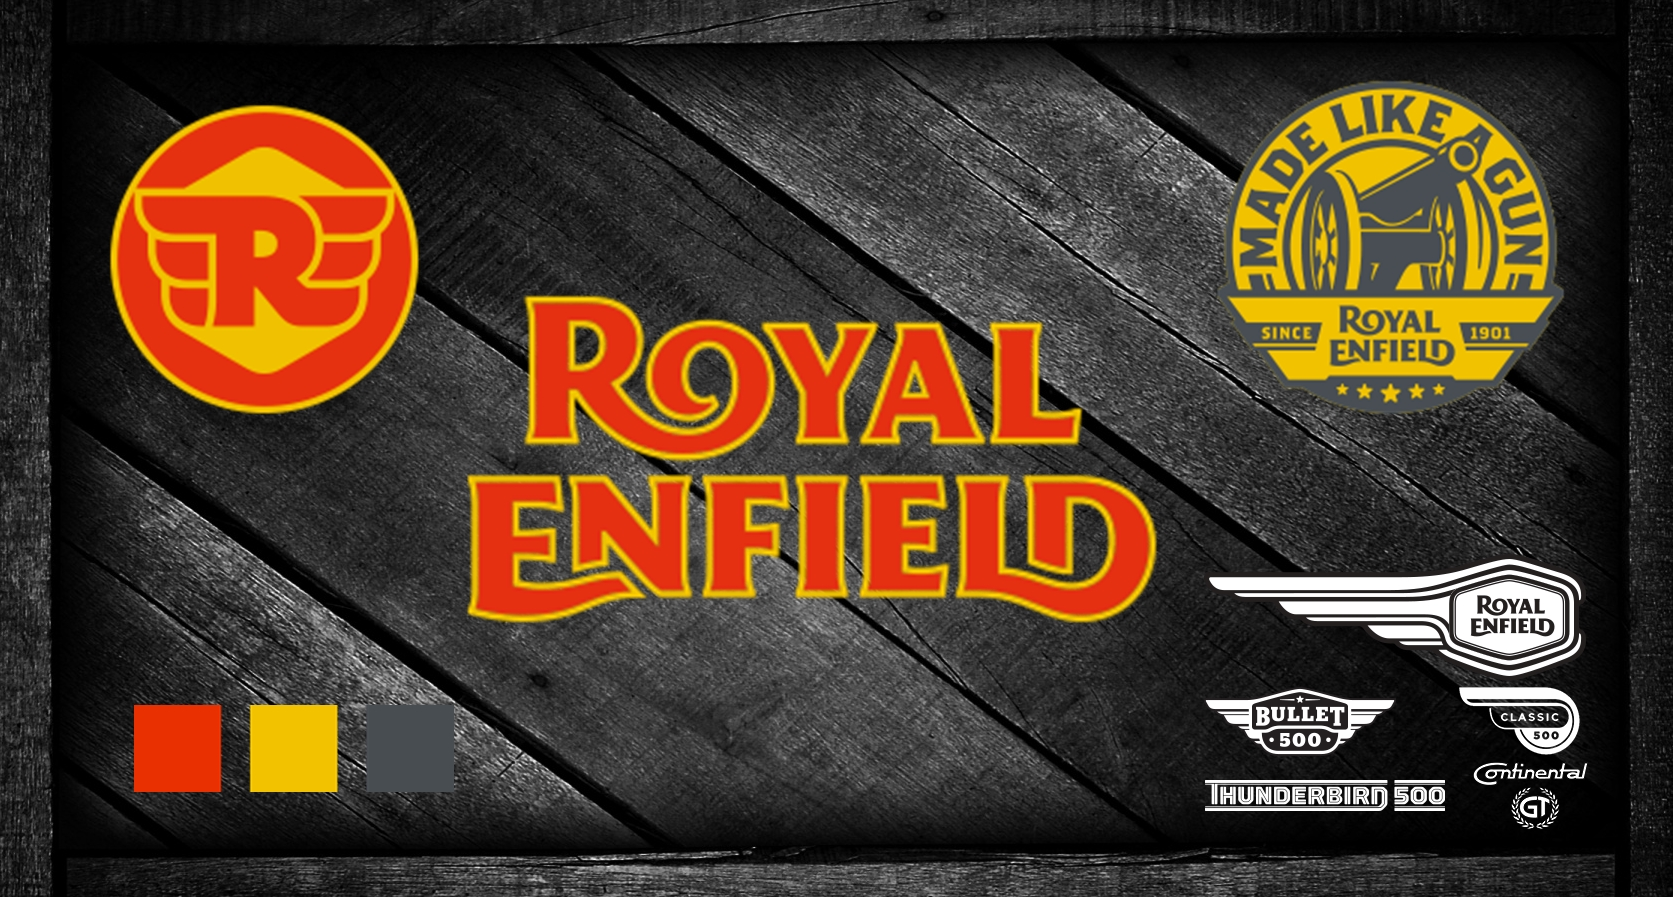 royal enfield motorcycles unveils new logo and crest